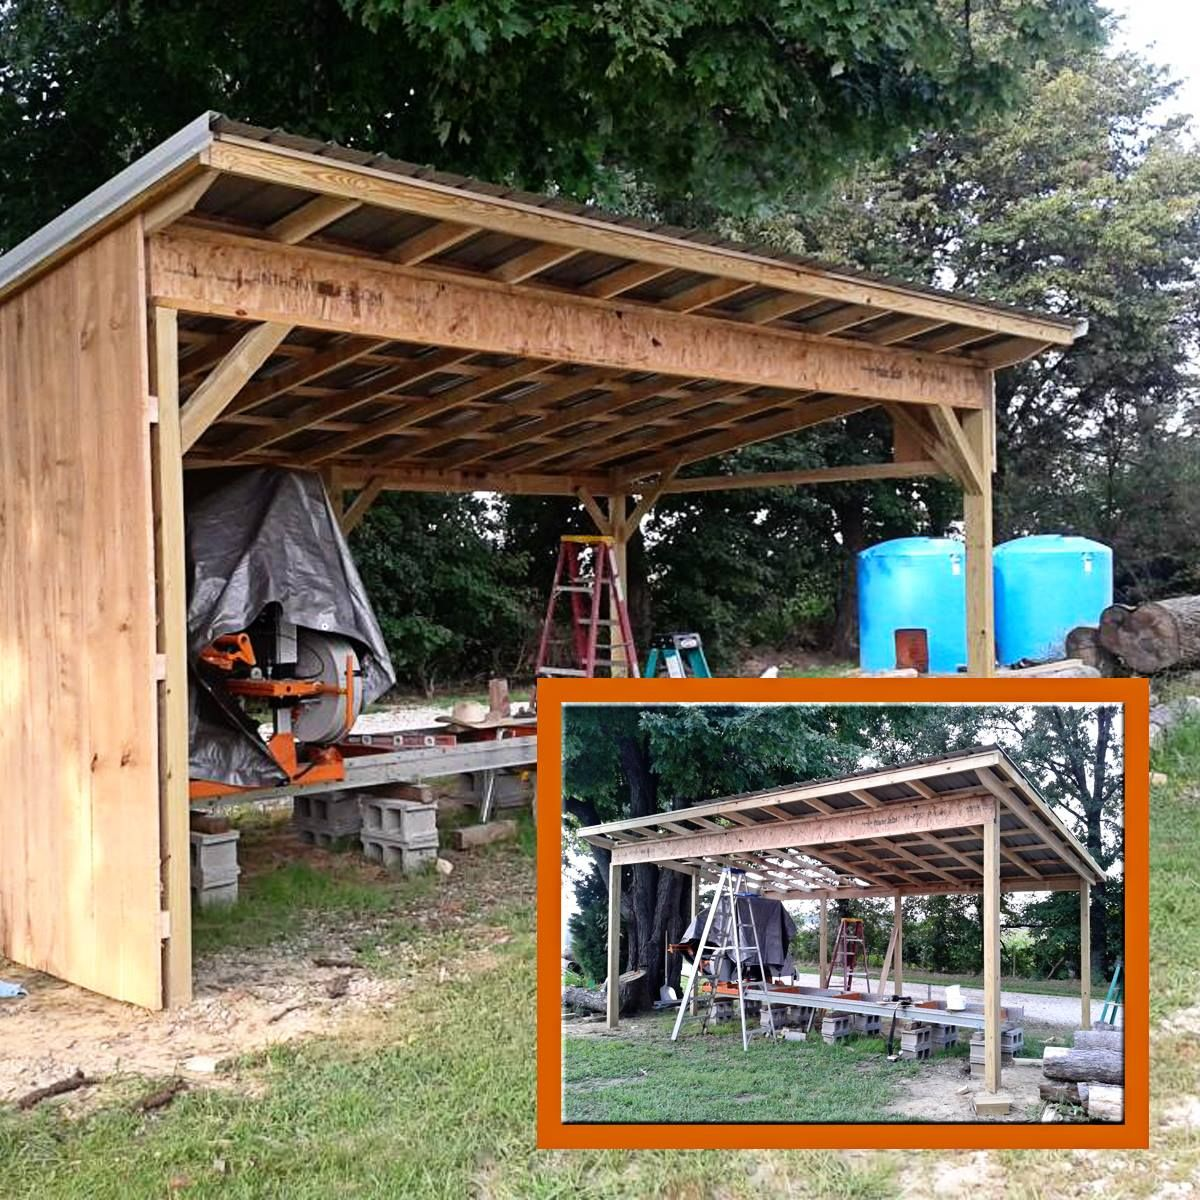 Shelter Building Wood Shed : Sawmill shelter diy woodworking pinterest shelters